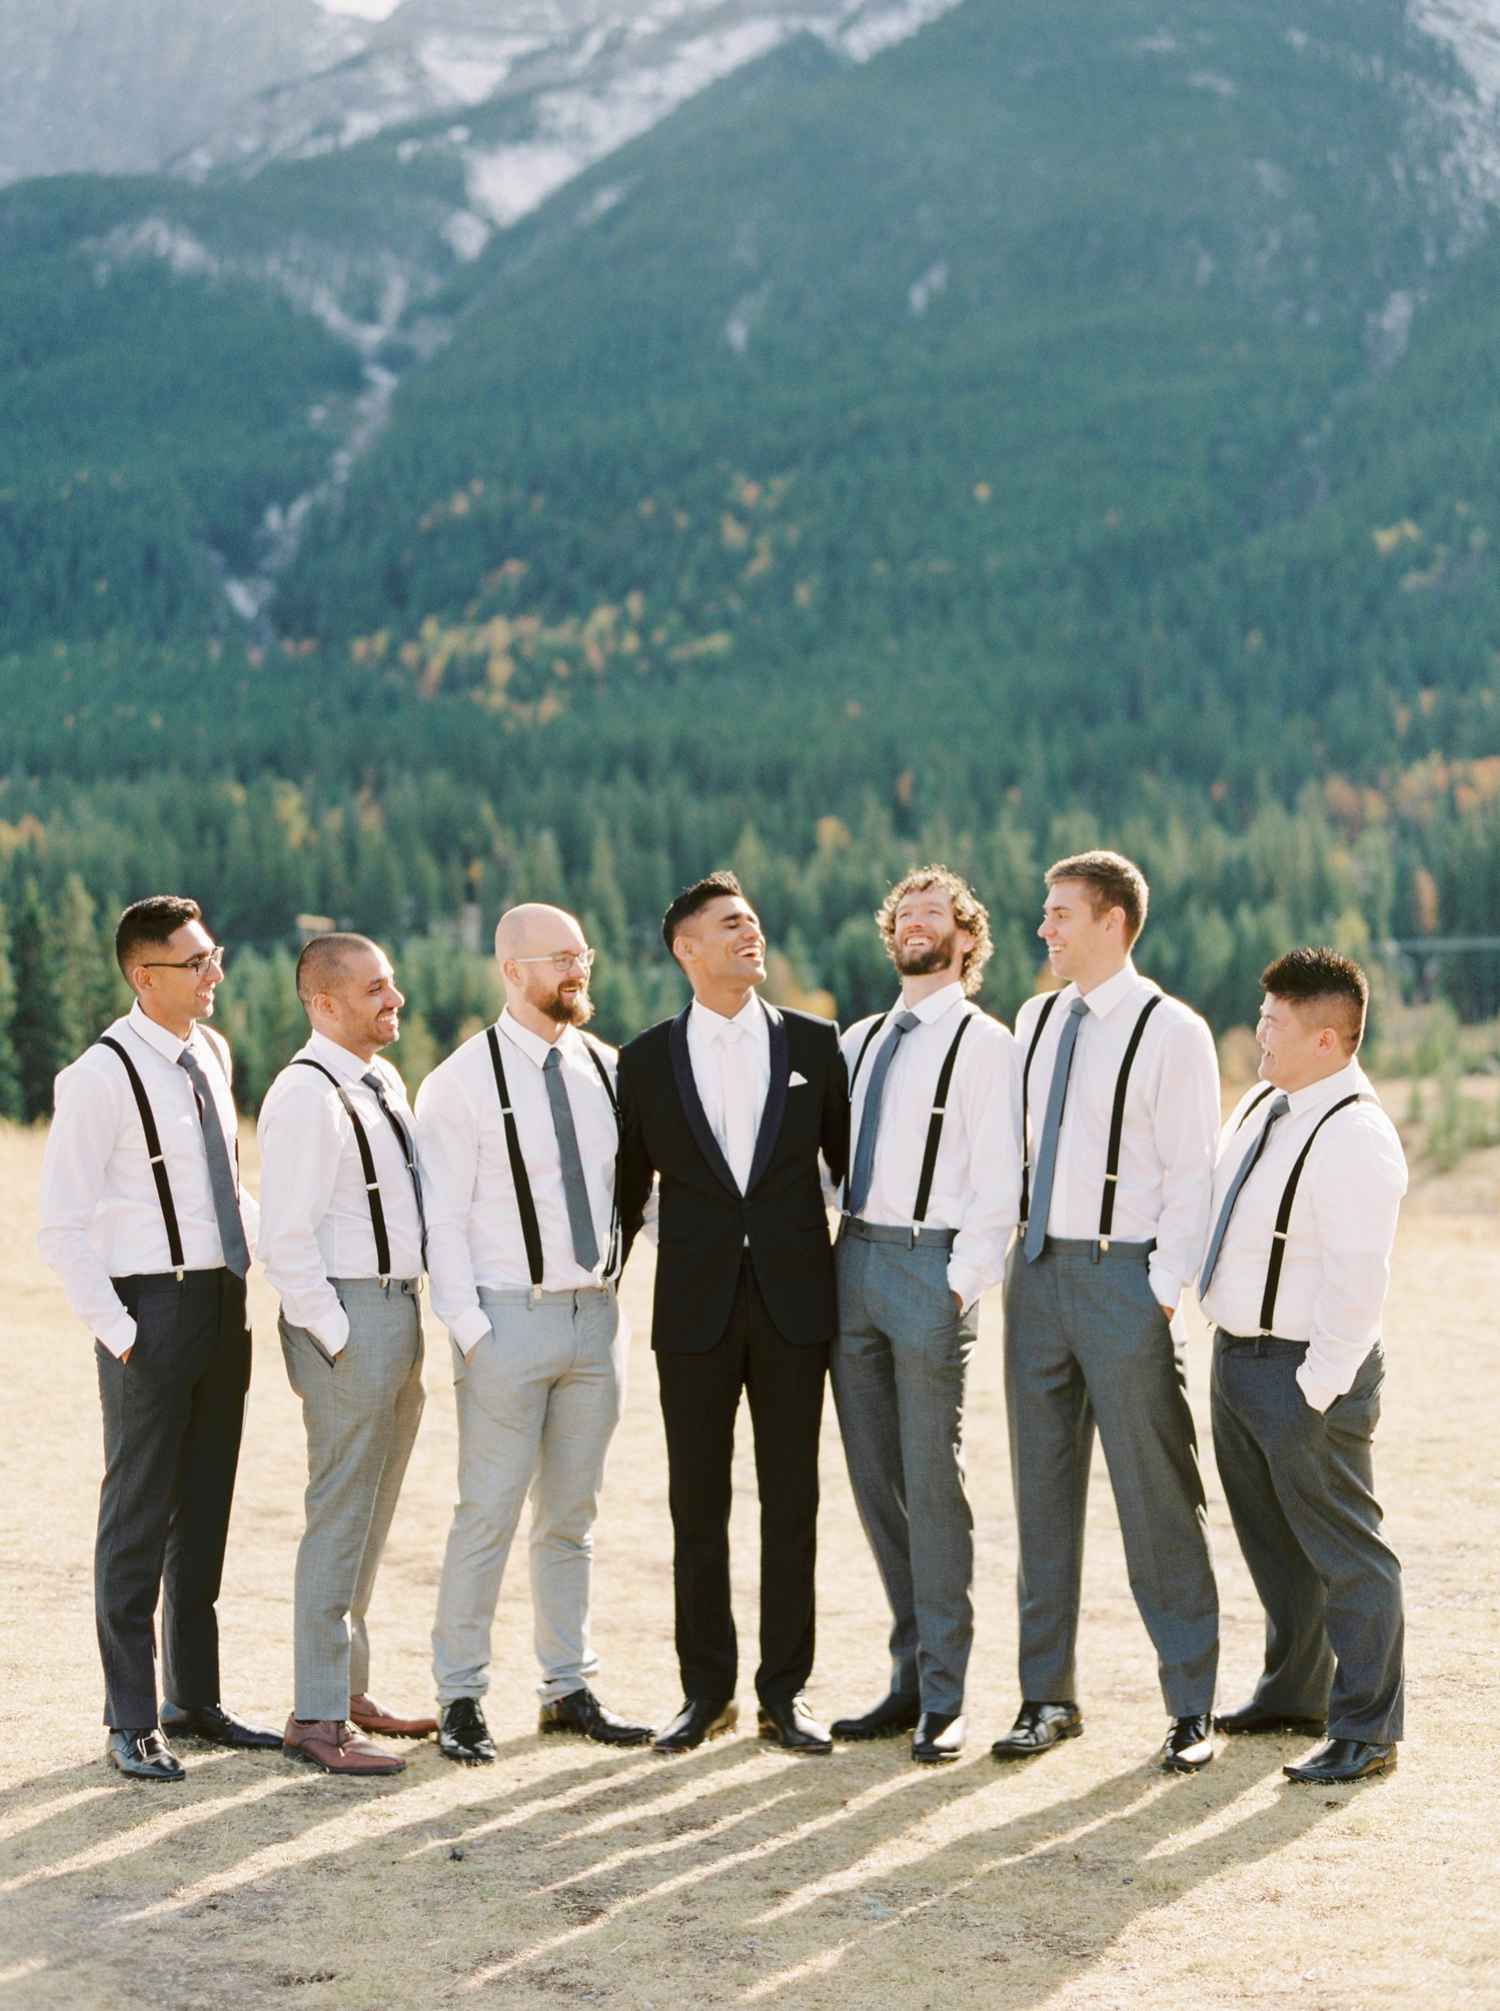 Calgary wedding photographers | fine art film | Justine Milton Photography | canmore wedding photographers | groomsmen portraits | mountain wedding